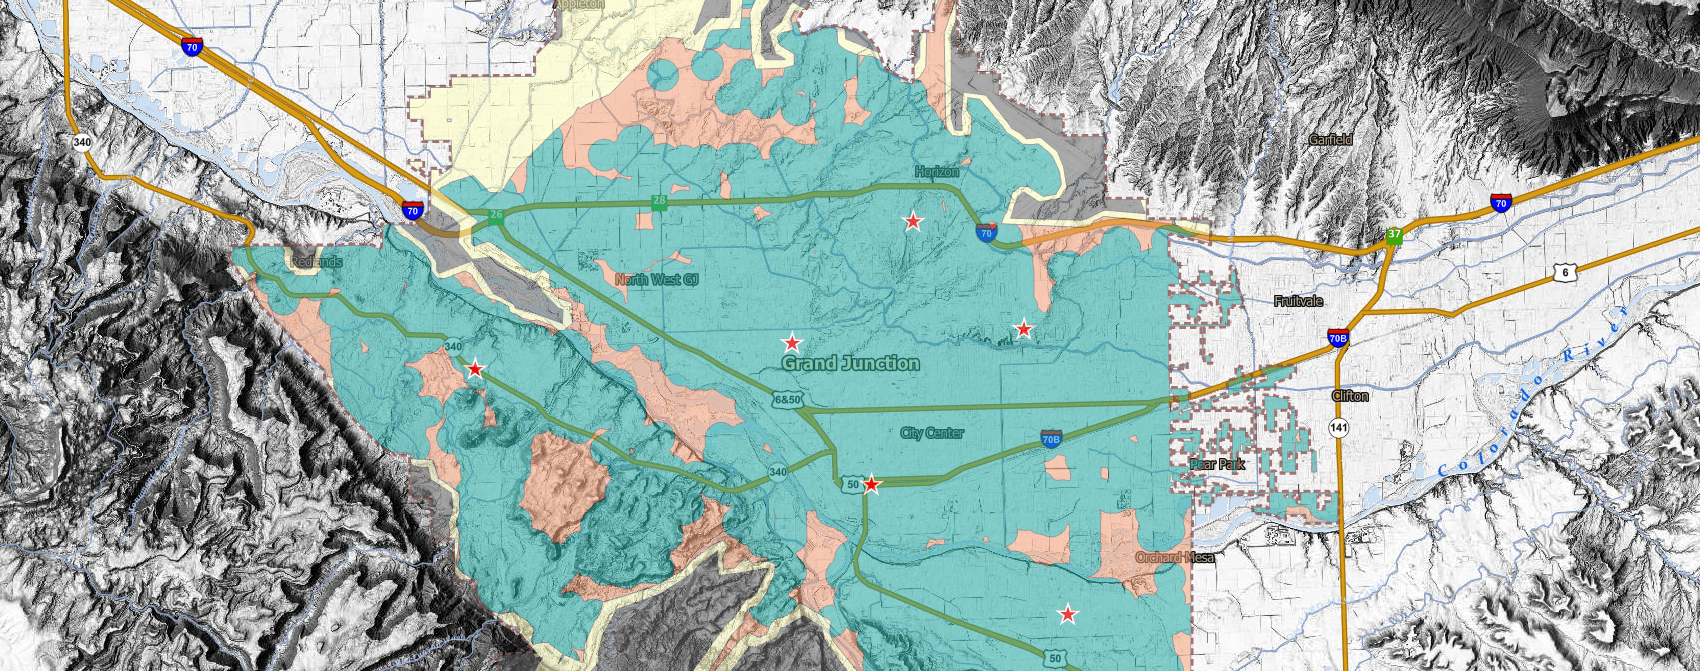 Map of Grand Junction